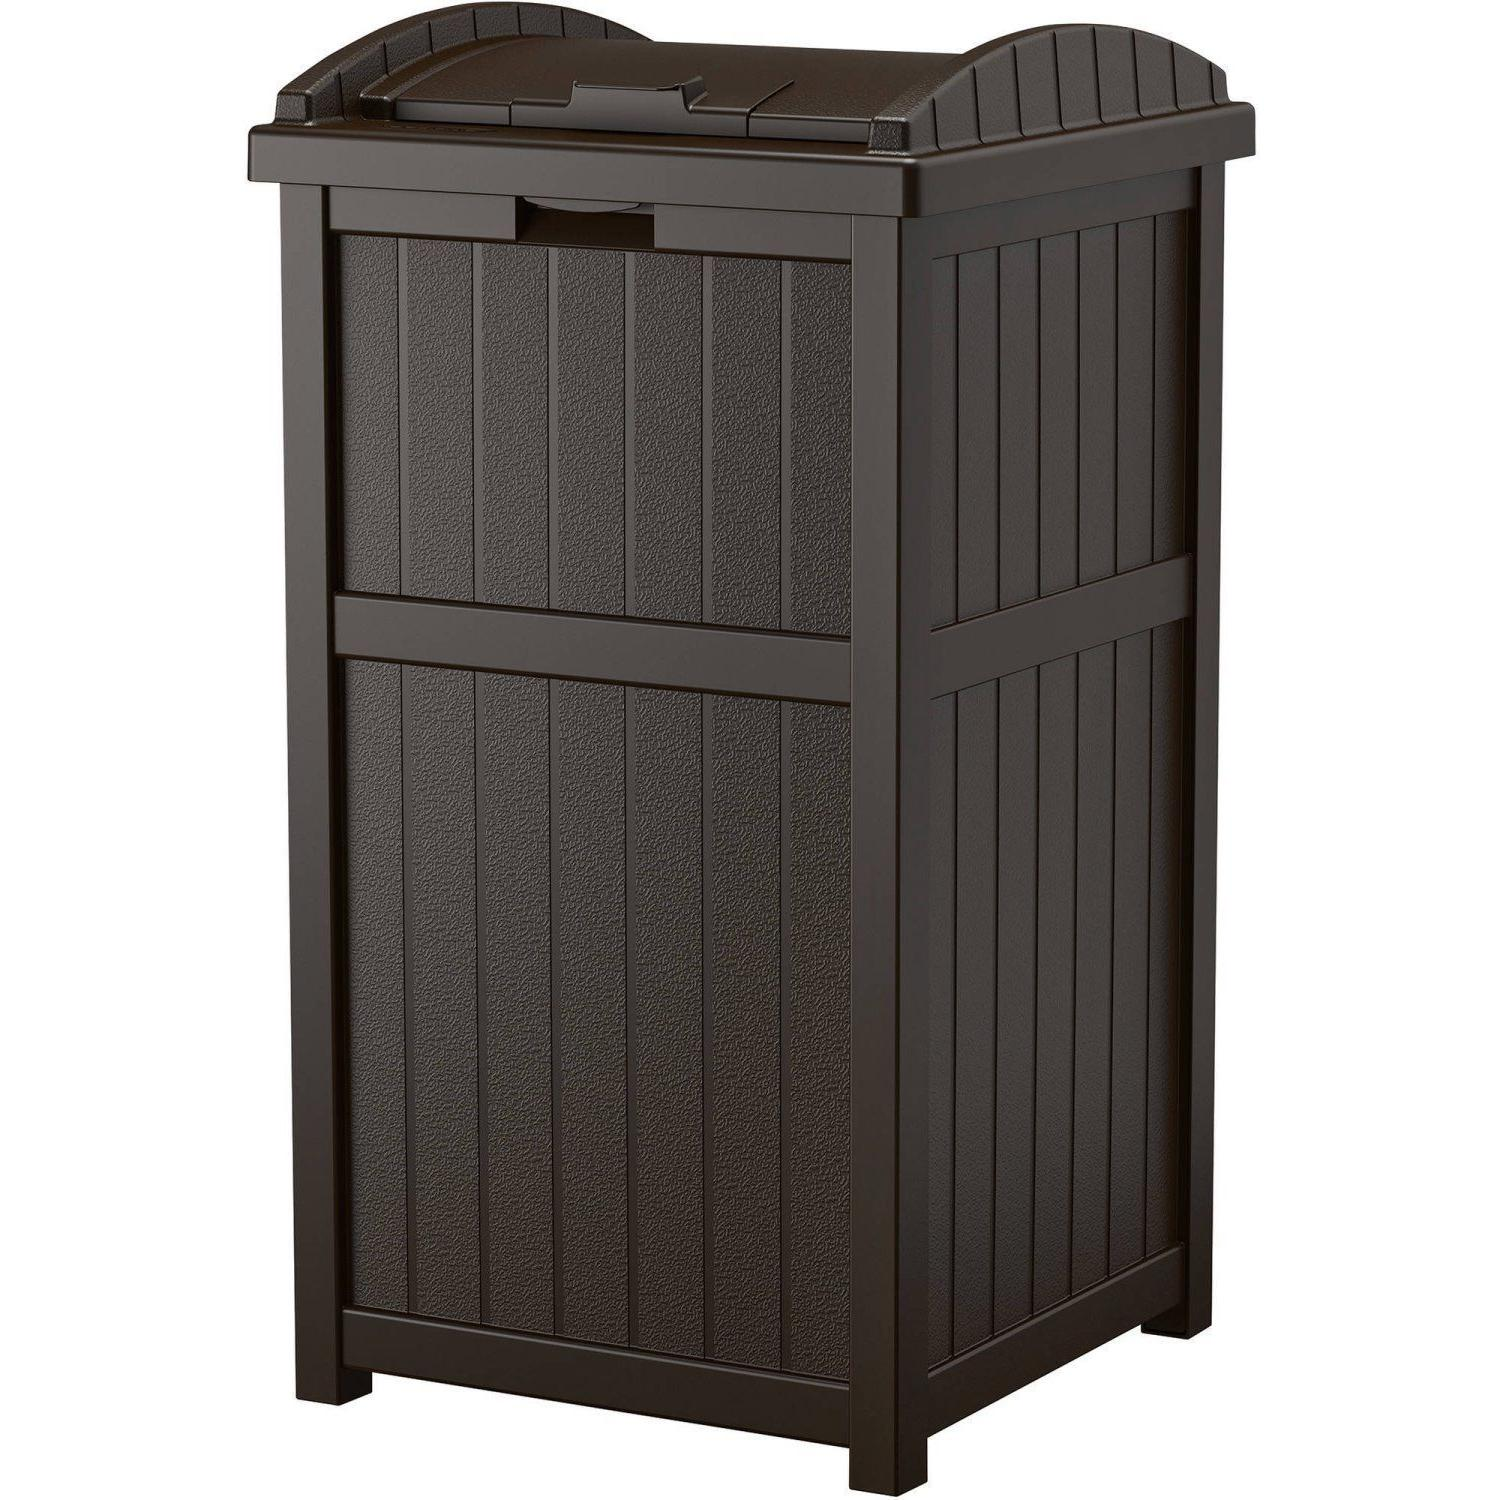 trash can bin container garbage wastebasket hideaway